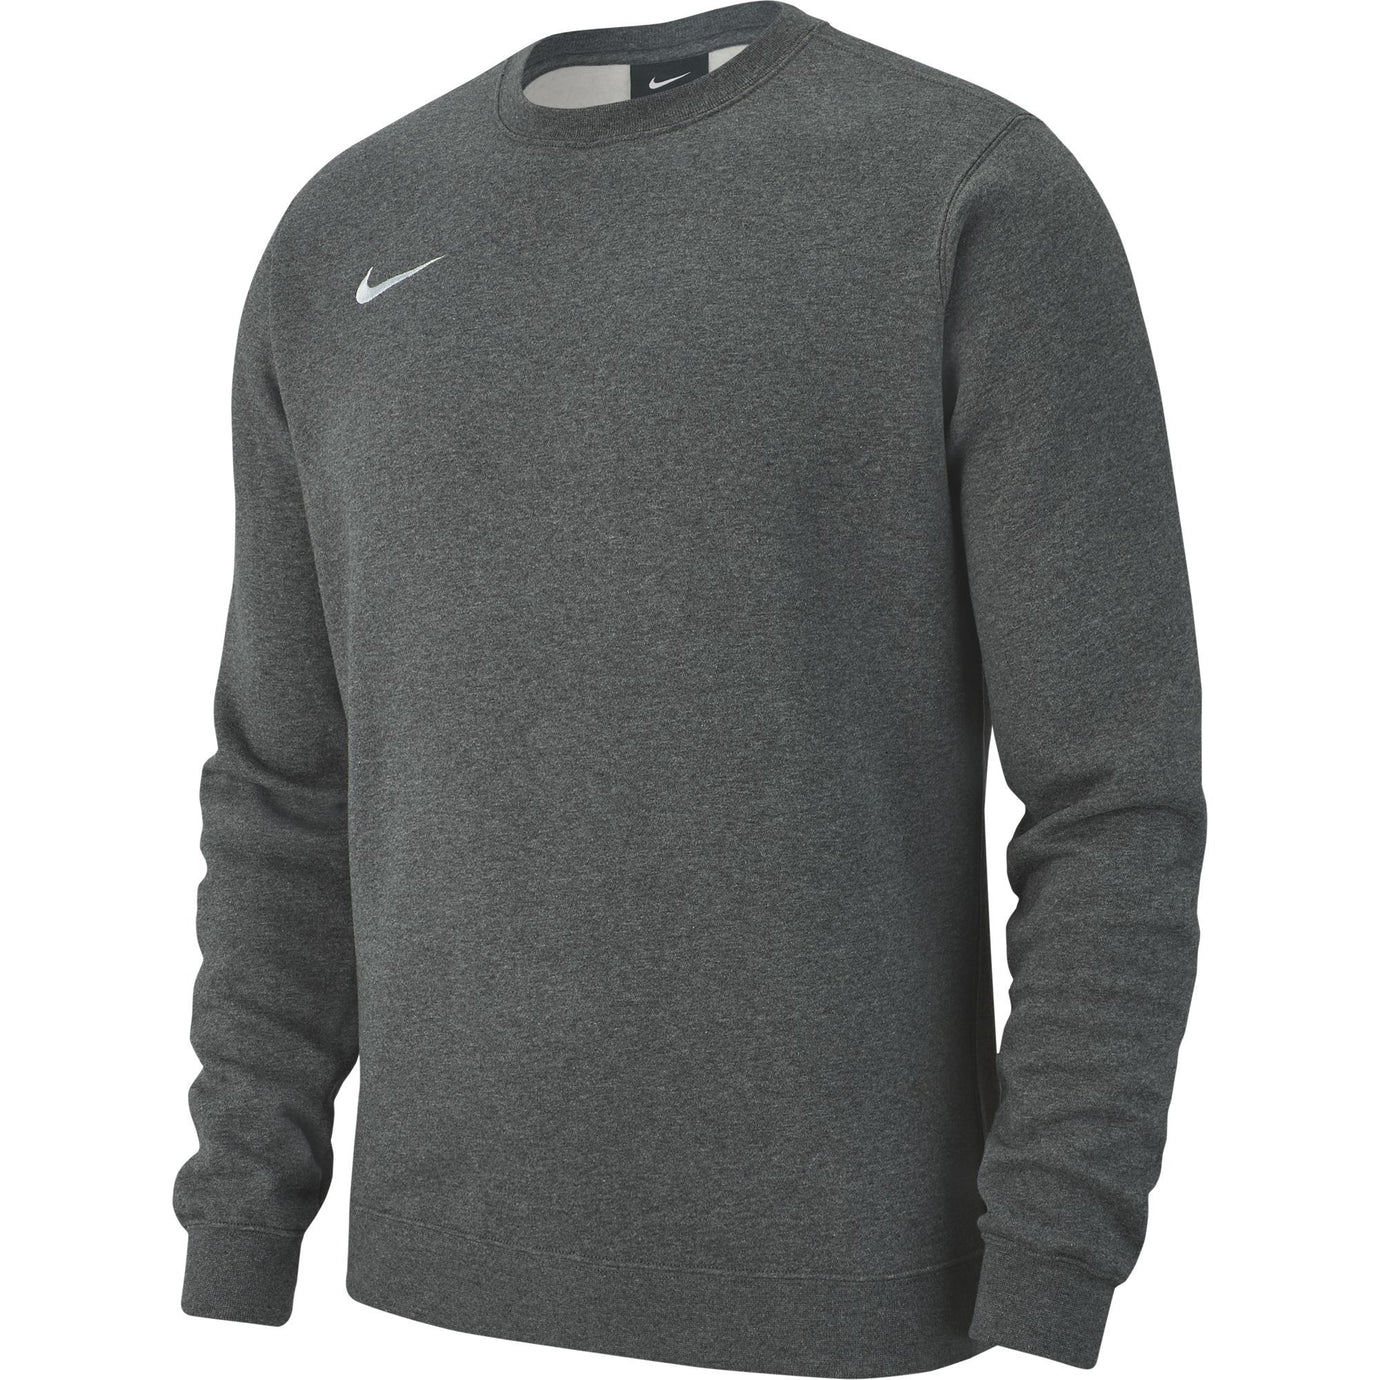 NIKE TEAM CLUB 19 CREW CHARCOAL HEATHER/WHITE